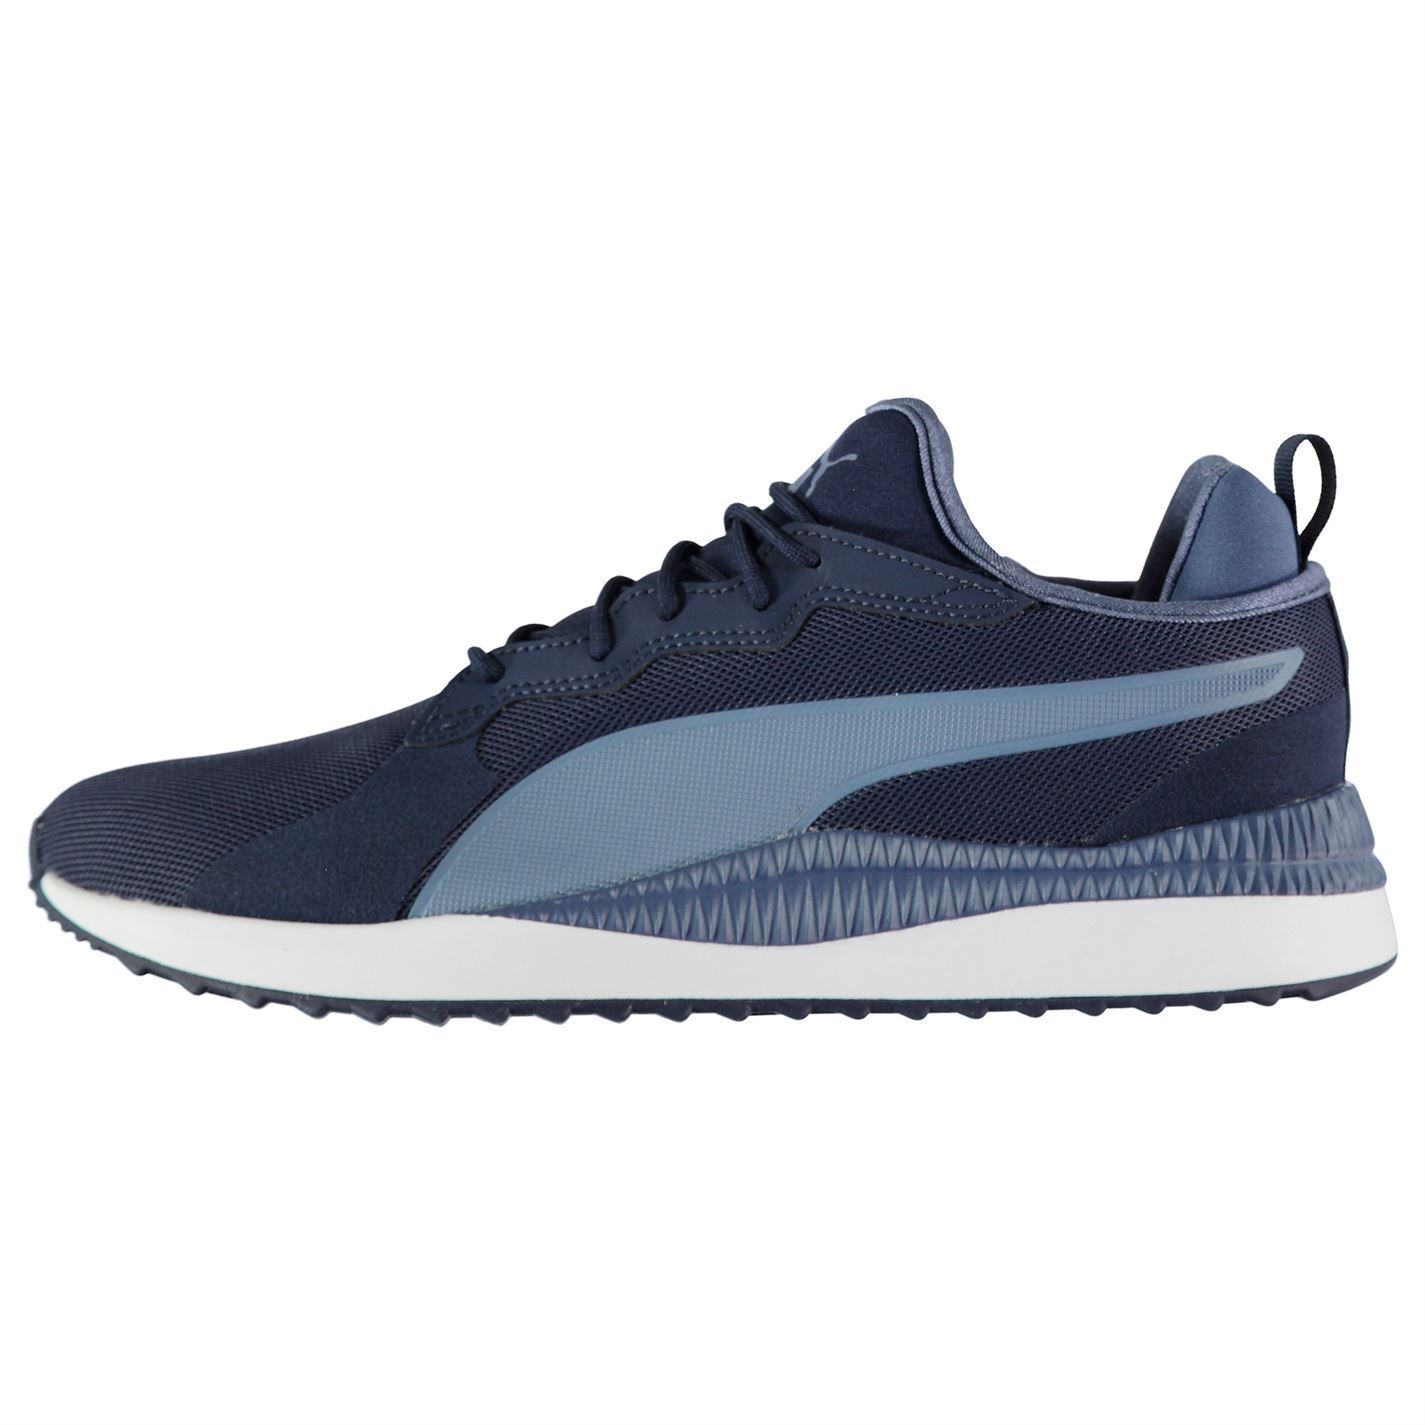 Puma Pacer Next Running Shoes Mens Trainers Sneakers Fitness